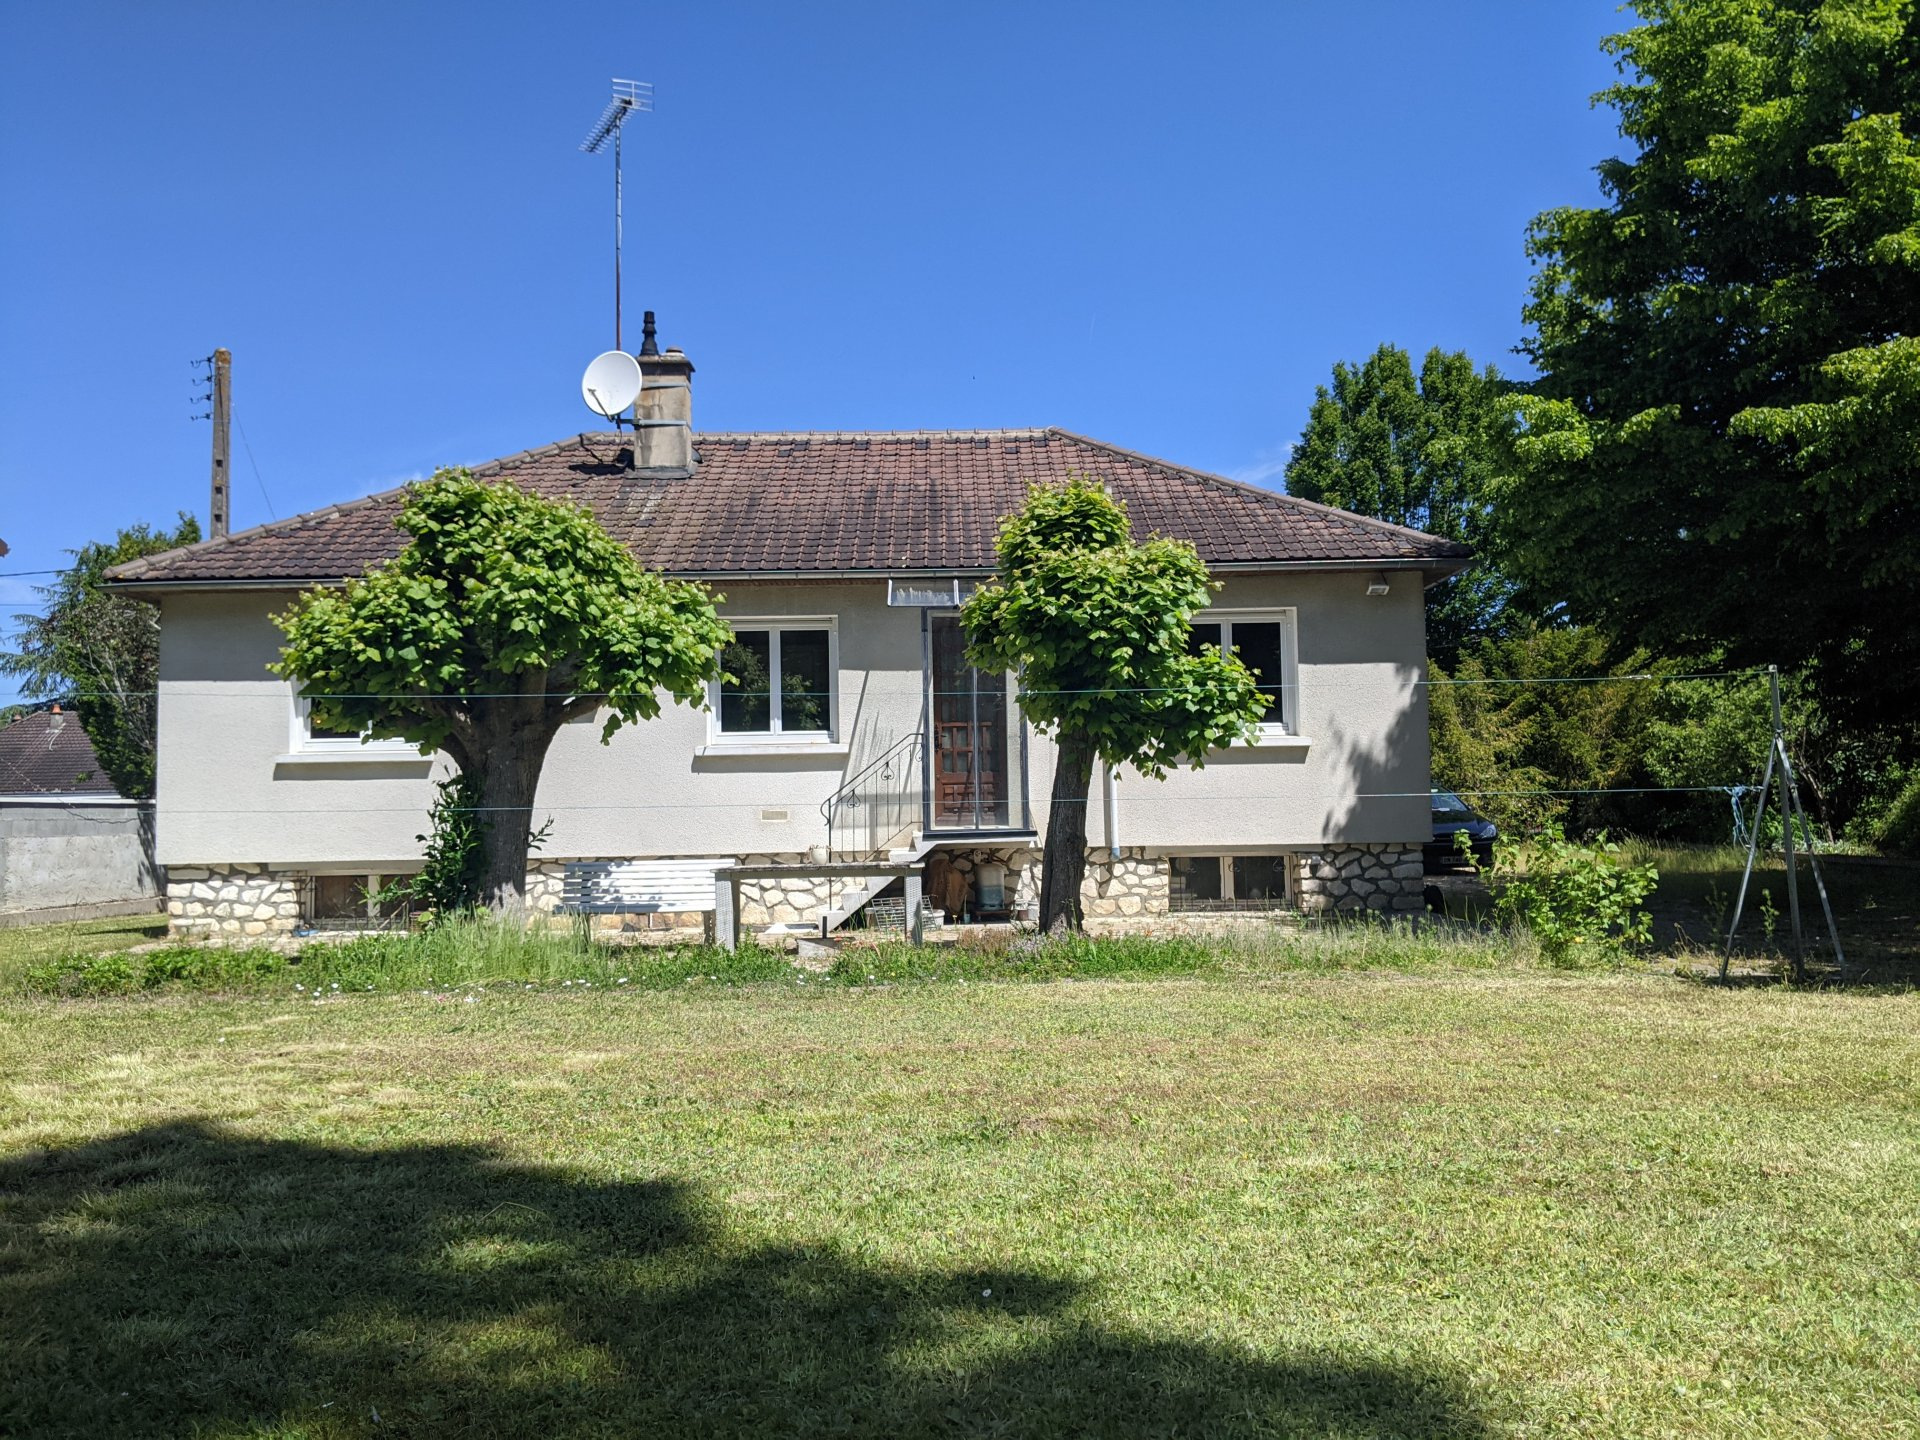 3 bedroom property, walking distance from Le Blanc town centre